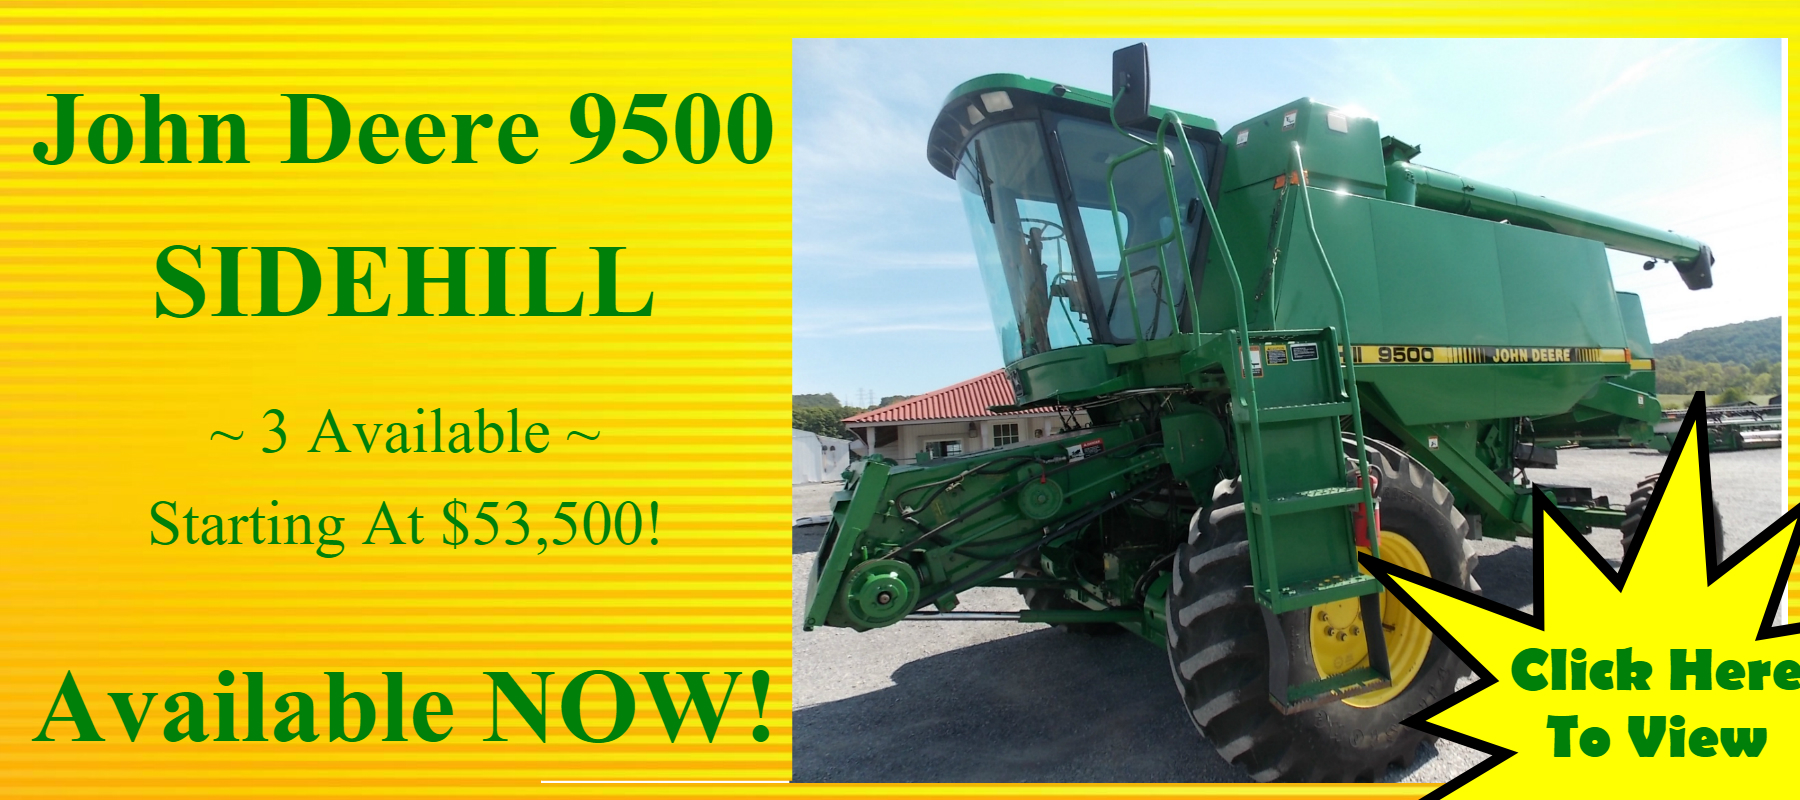 John Deere 9500 Sidehill Combine for sale